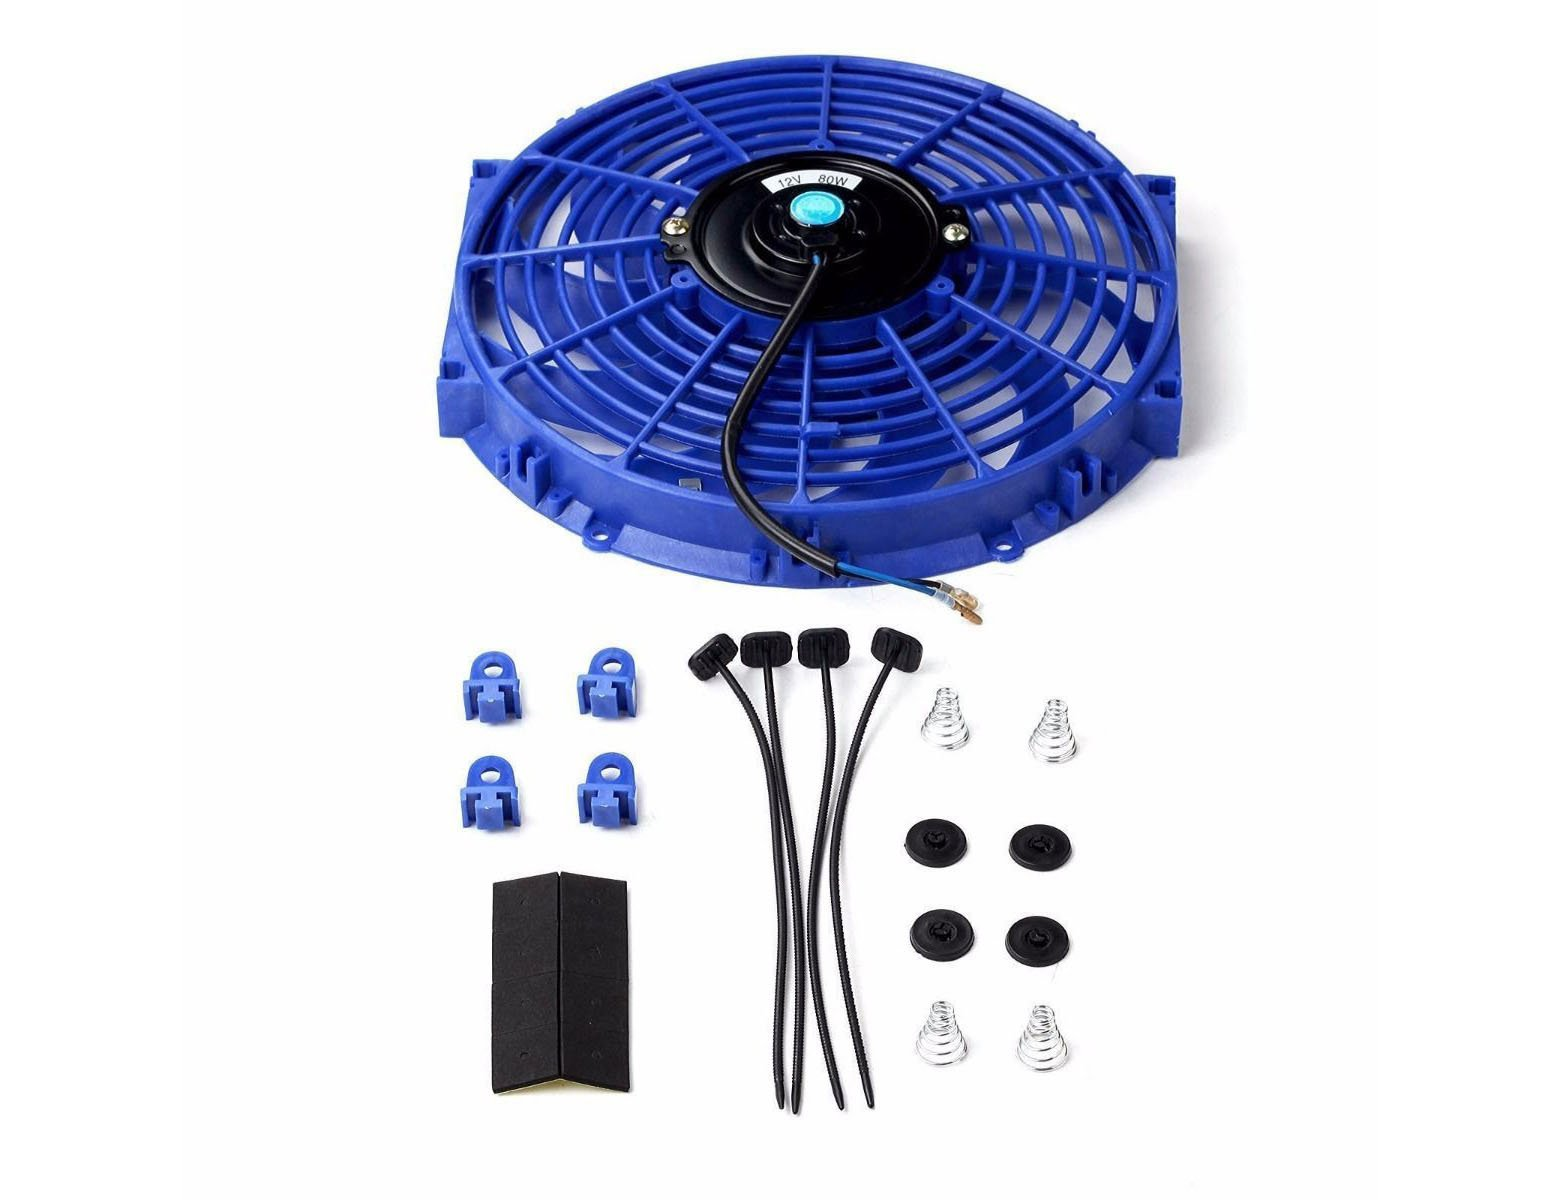 SUPERFASTRACING 12'' Inch Universal Slim Fan Push Pull Electric Radiator Cooling 12V Mount Kit Black